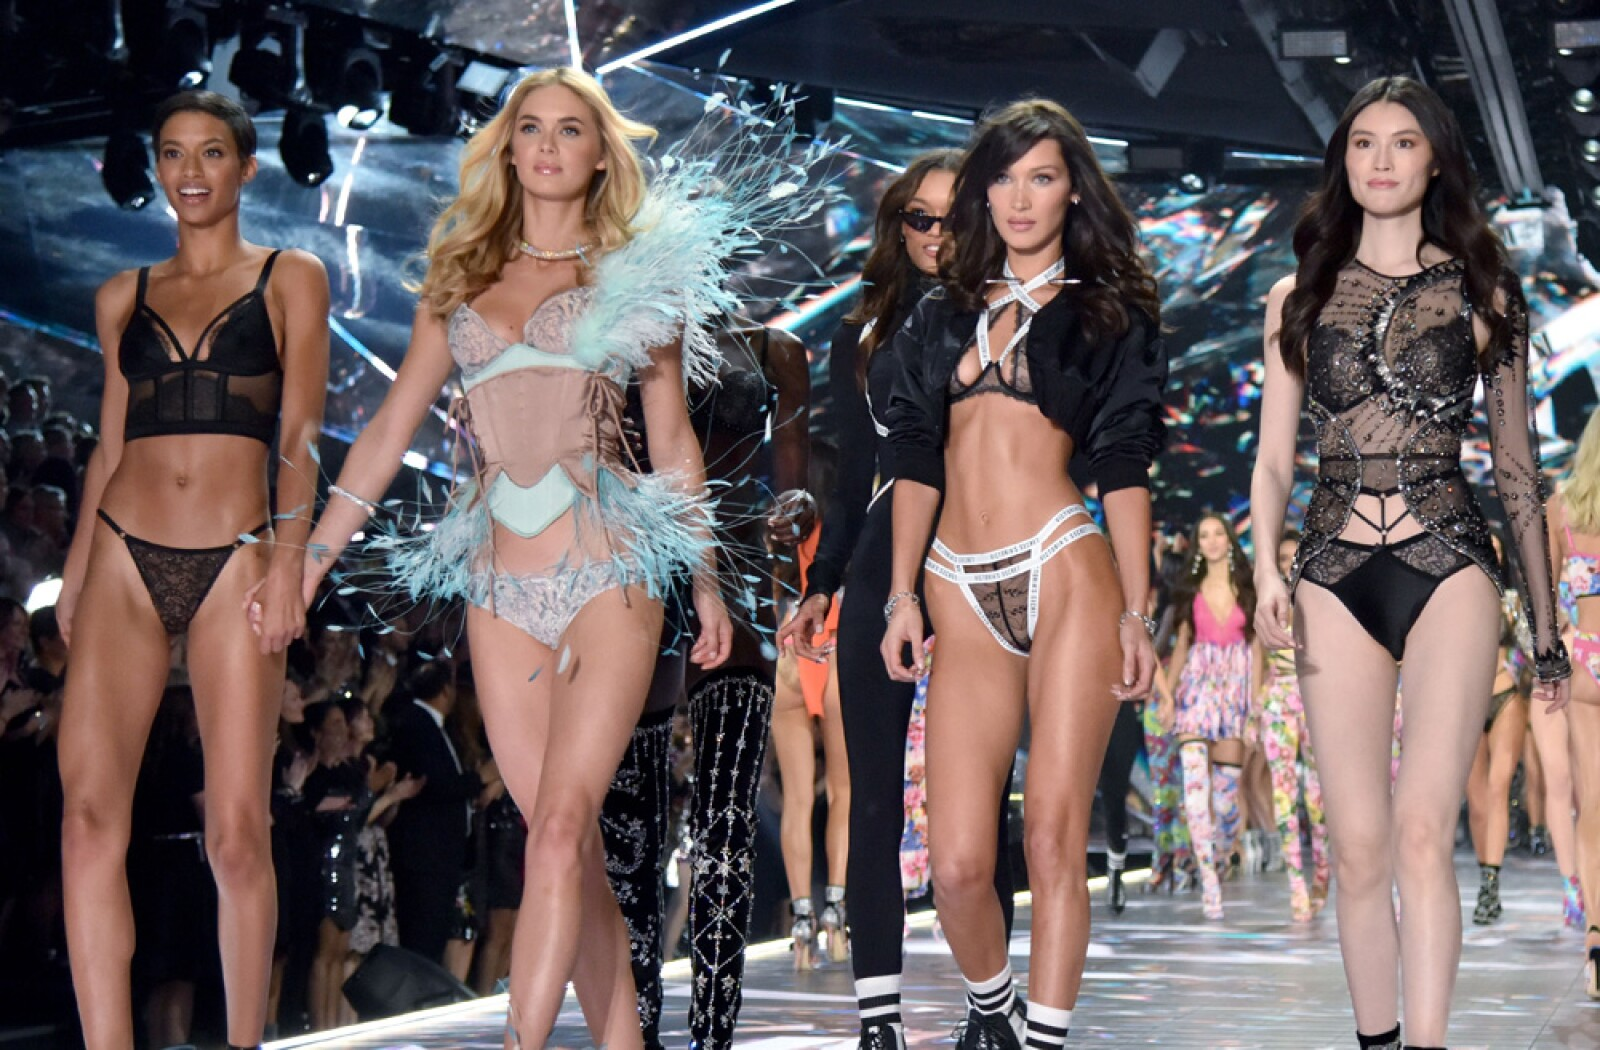 Victoria's Secret Fashion Show, Runway, New York, USA - 08 Nov 2018